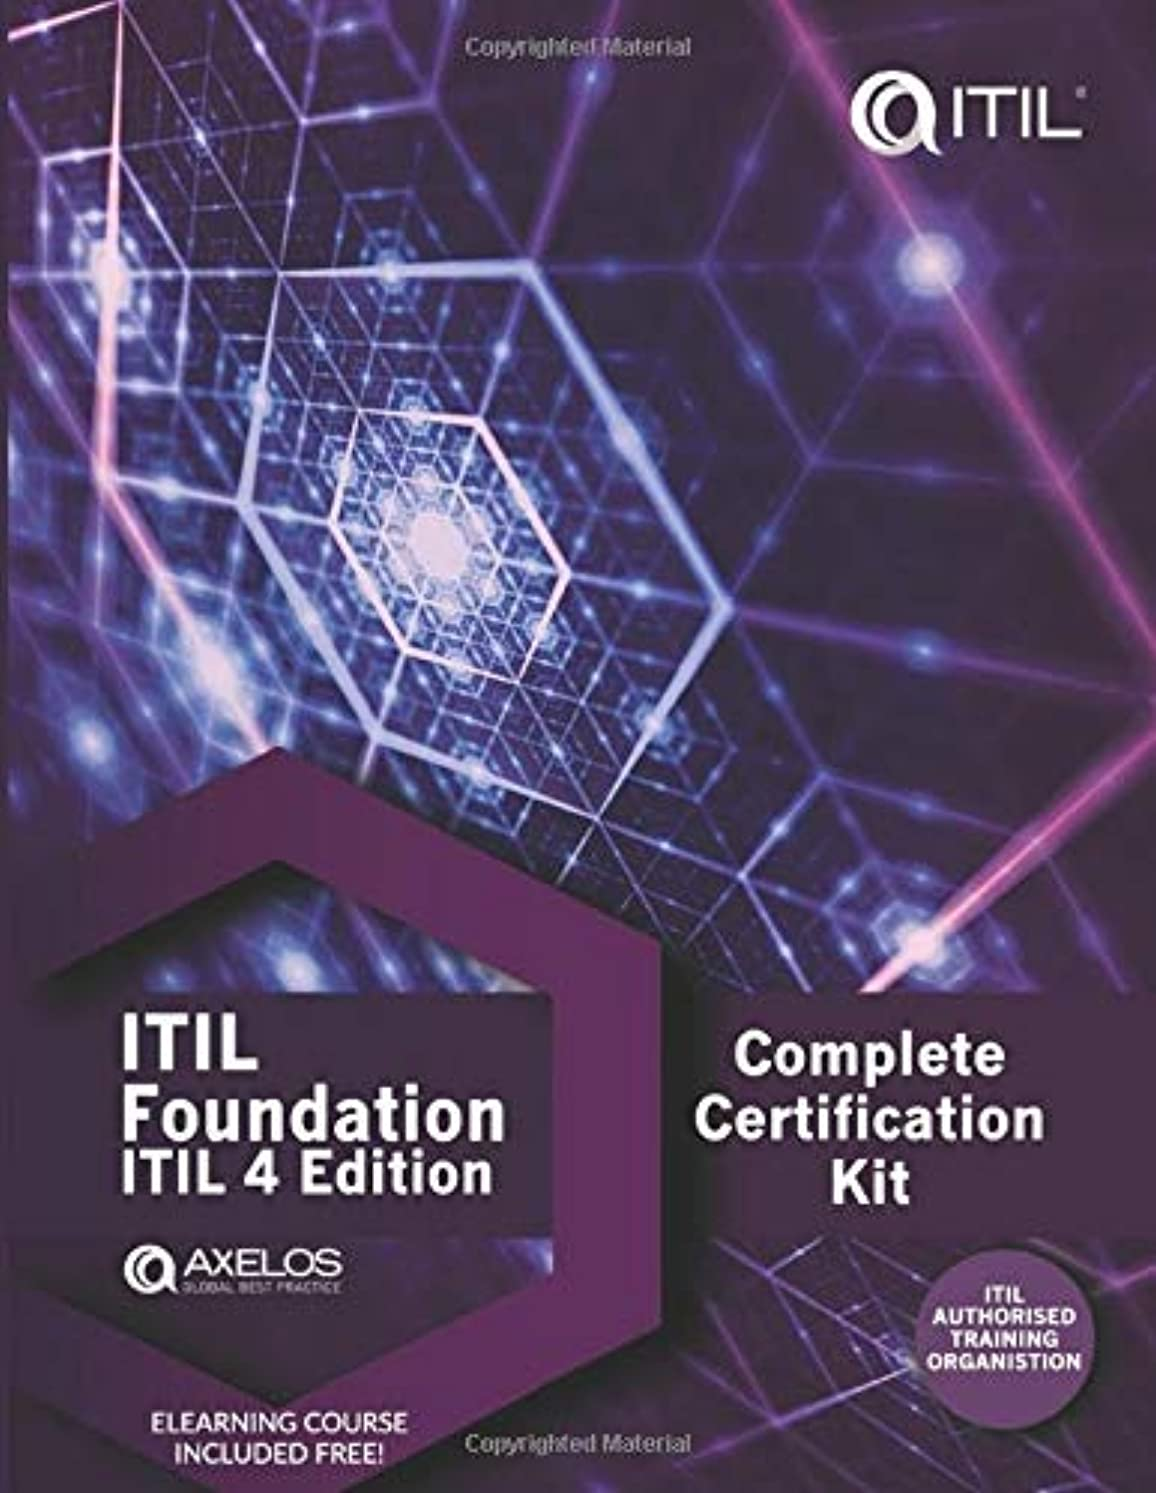 ベイビー狂信者緩やかなITIL4 Foundation Complete certification kit (ITIL 4 Foundation)